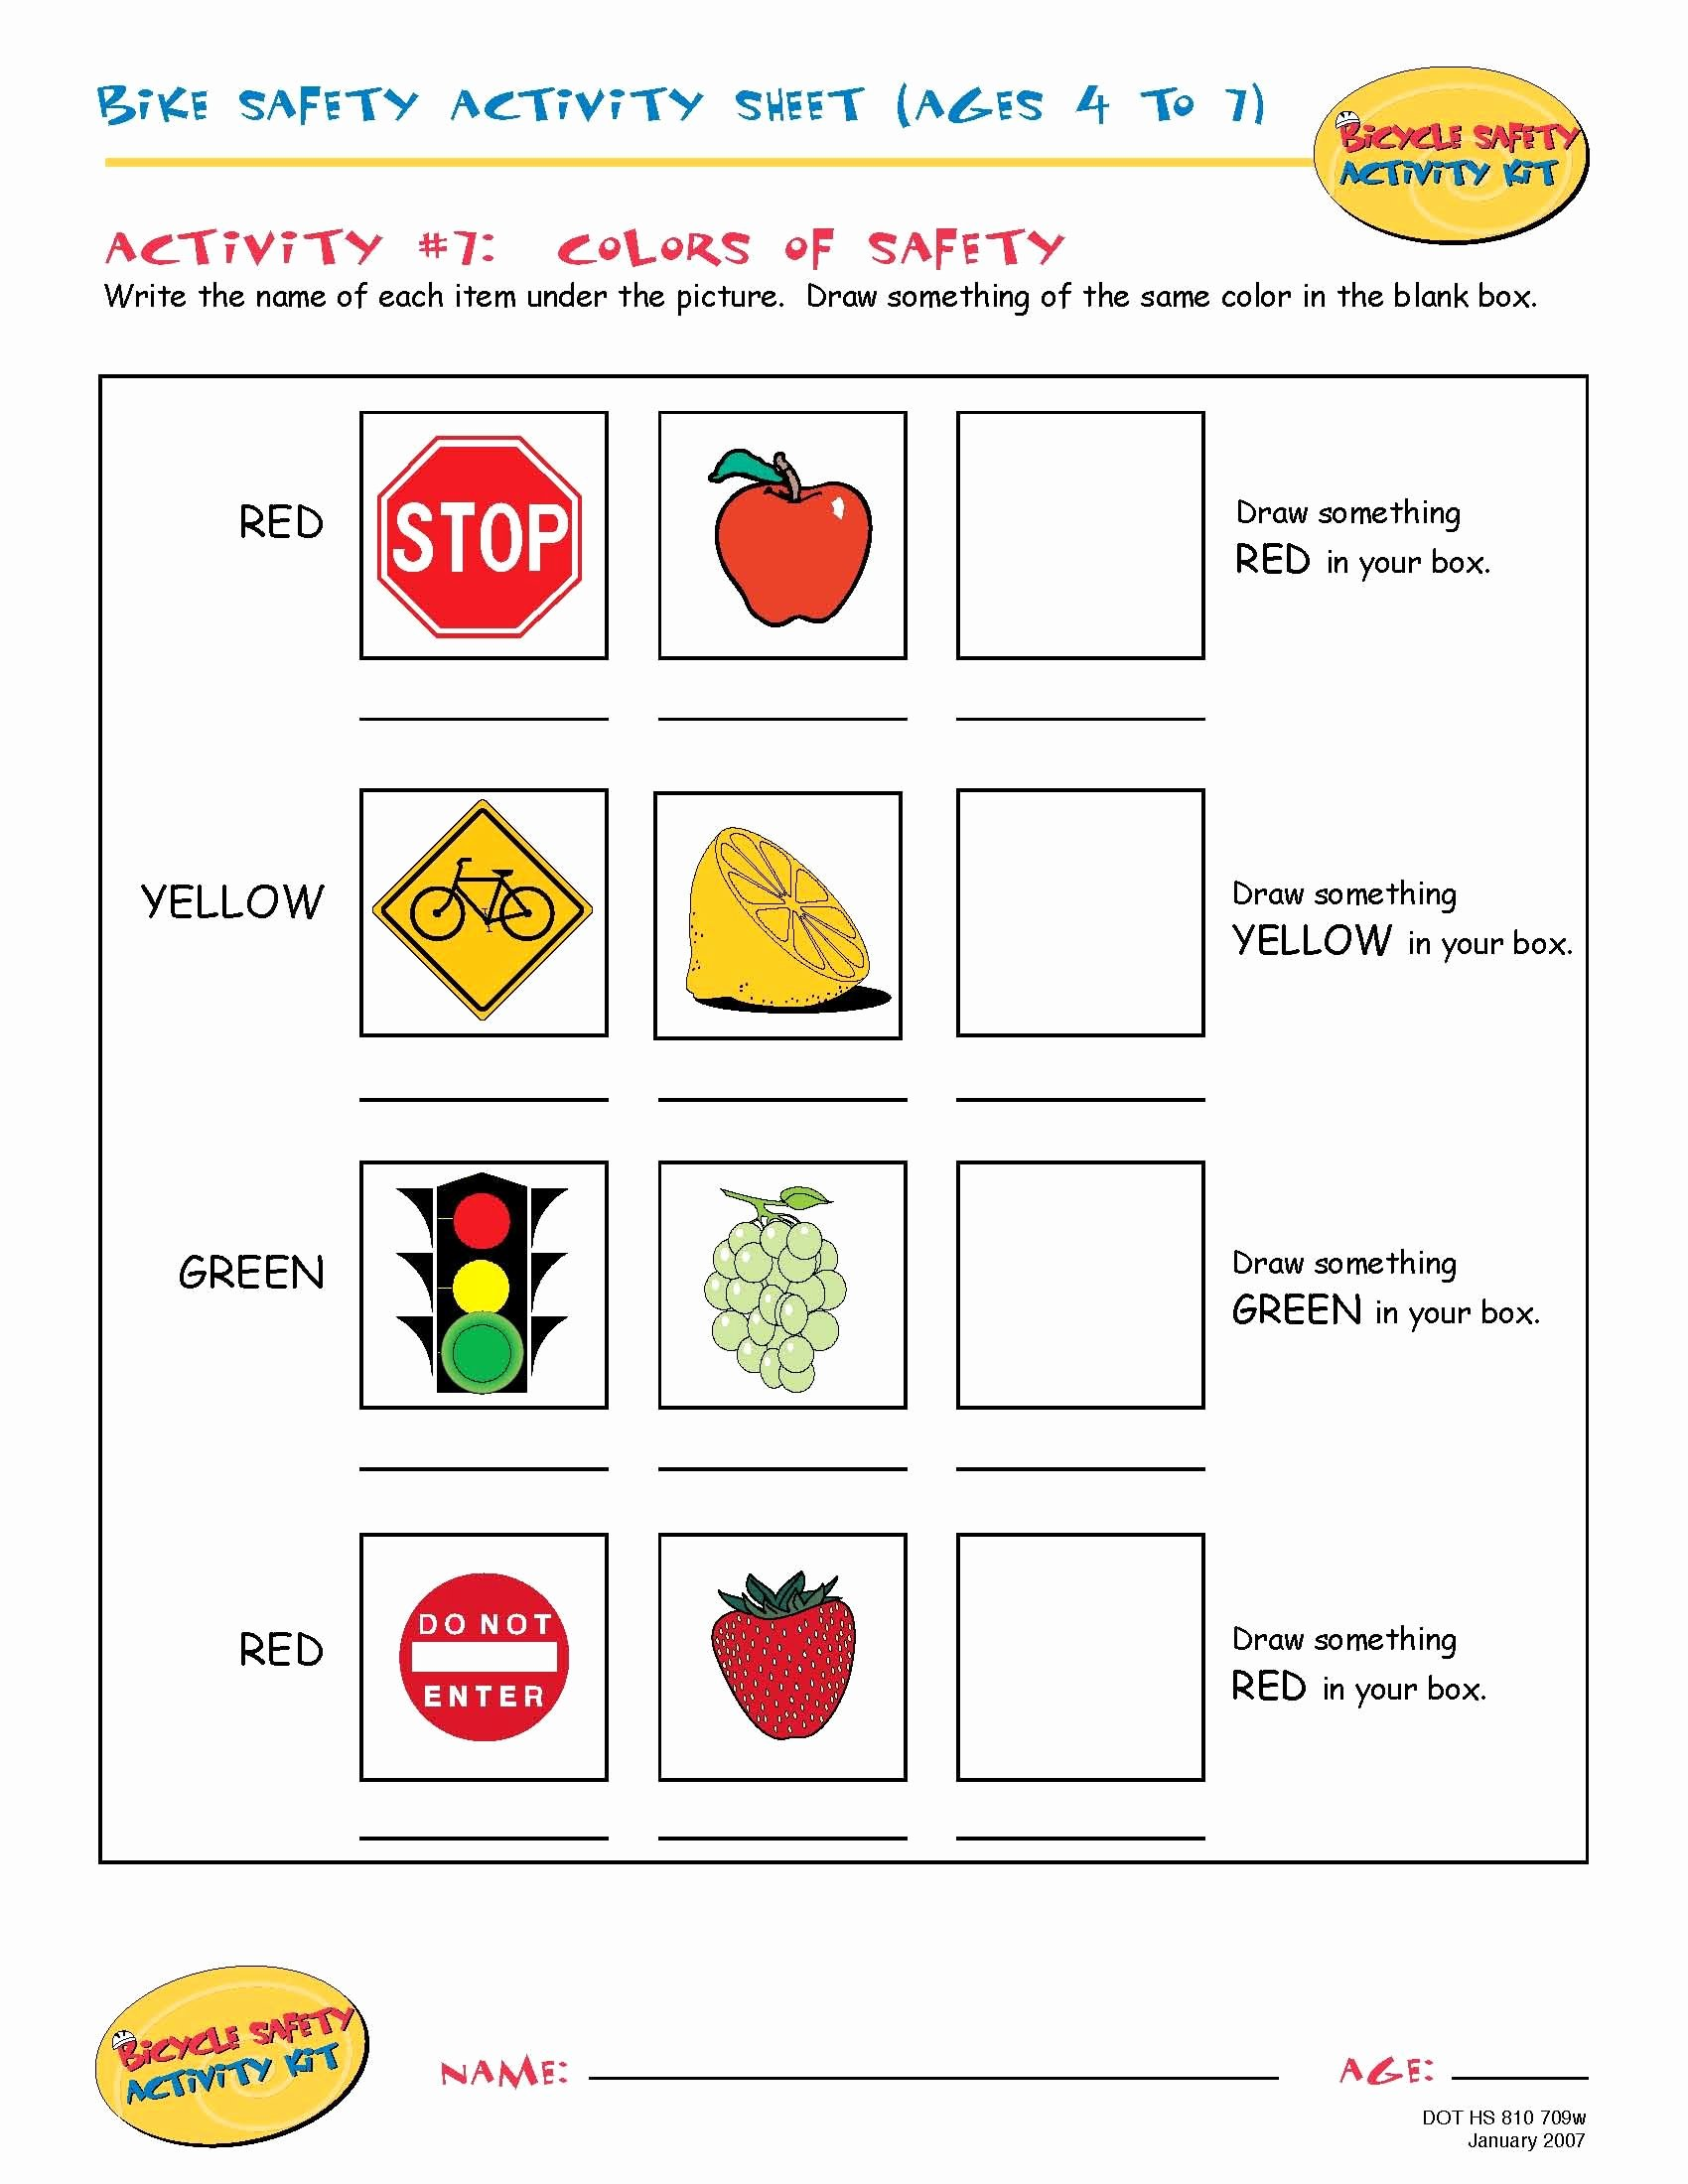 Pedestrian Safety Worksheets for Preschoolers Best Of Bike Safety Activity Sheet Ages 4 to 7 Colors Of Safety